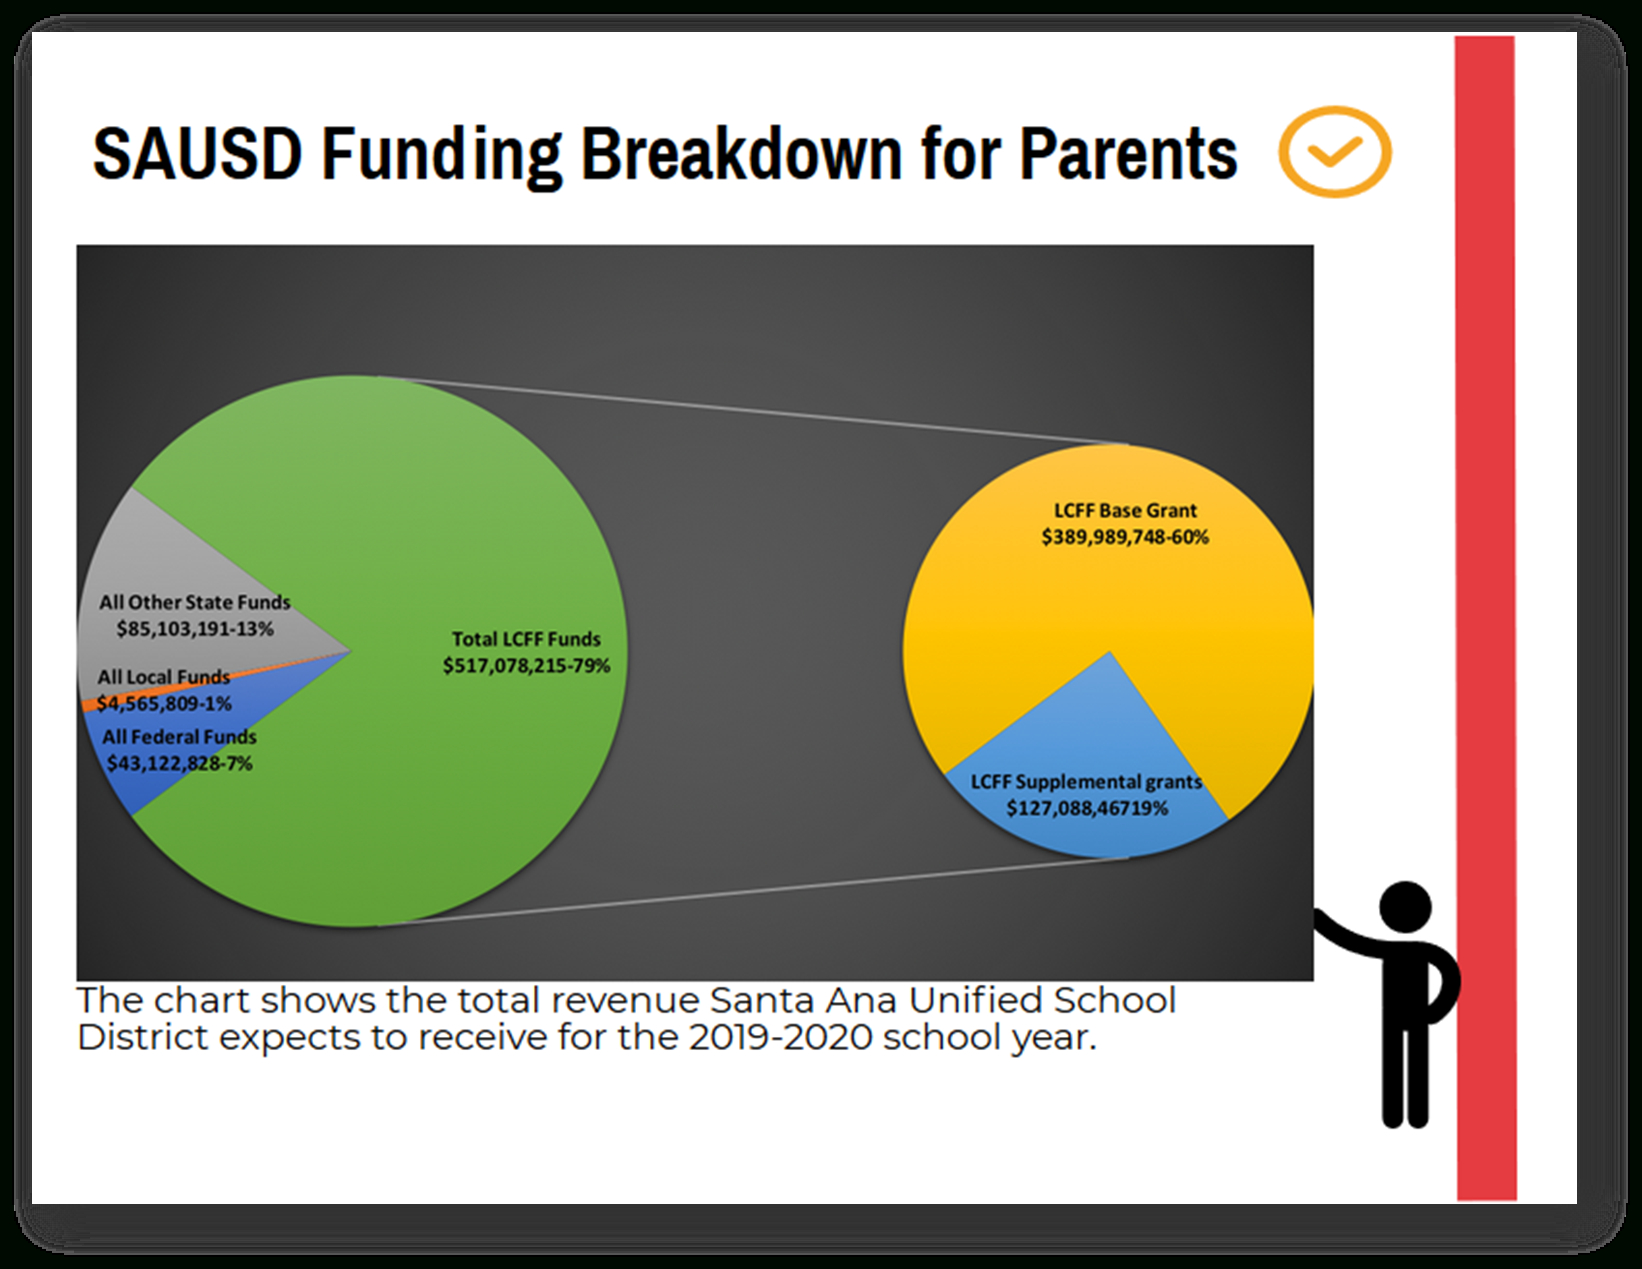 Santa Ana Unified School District Outlook | Printable with regard to Santa Ana Unified School District Outlook